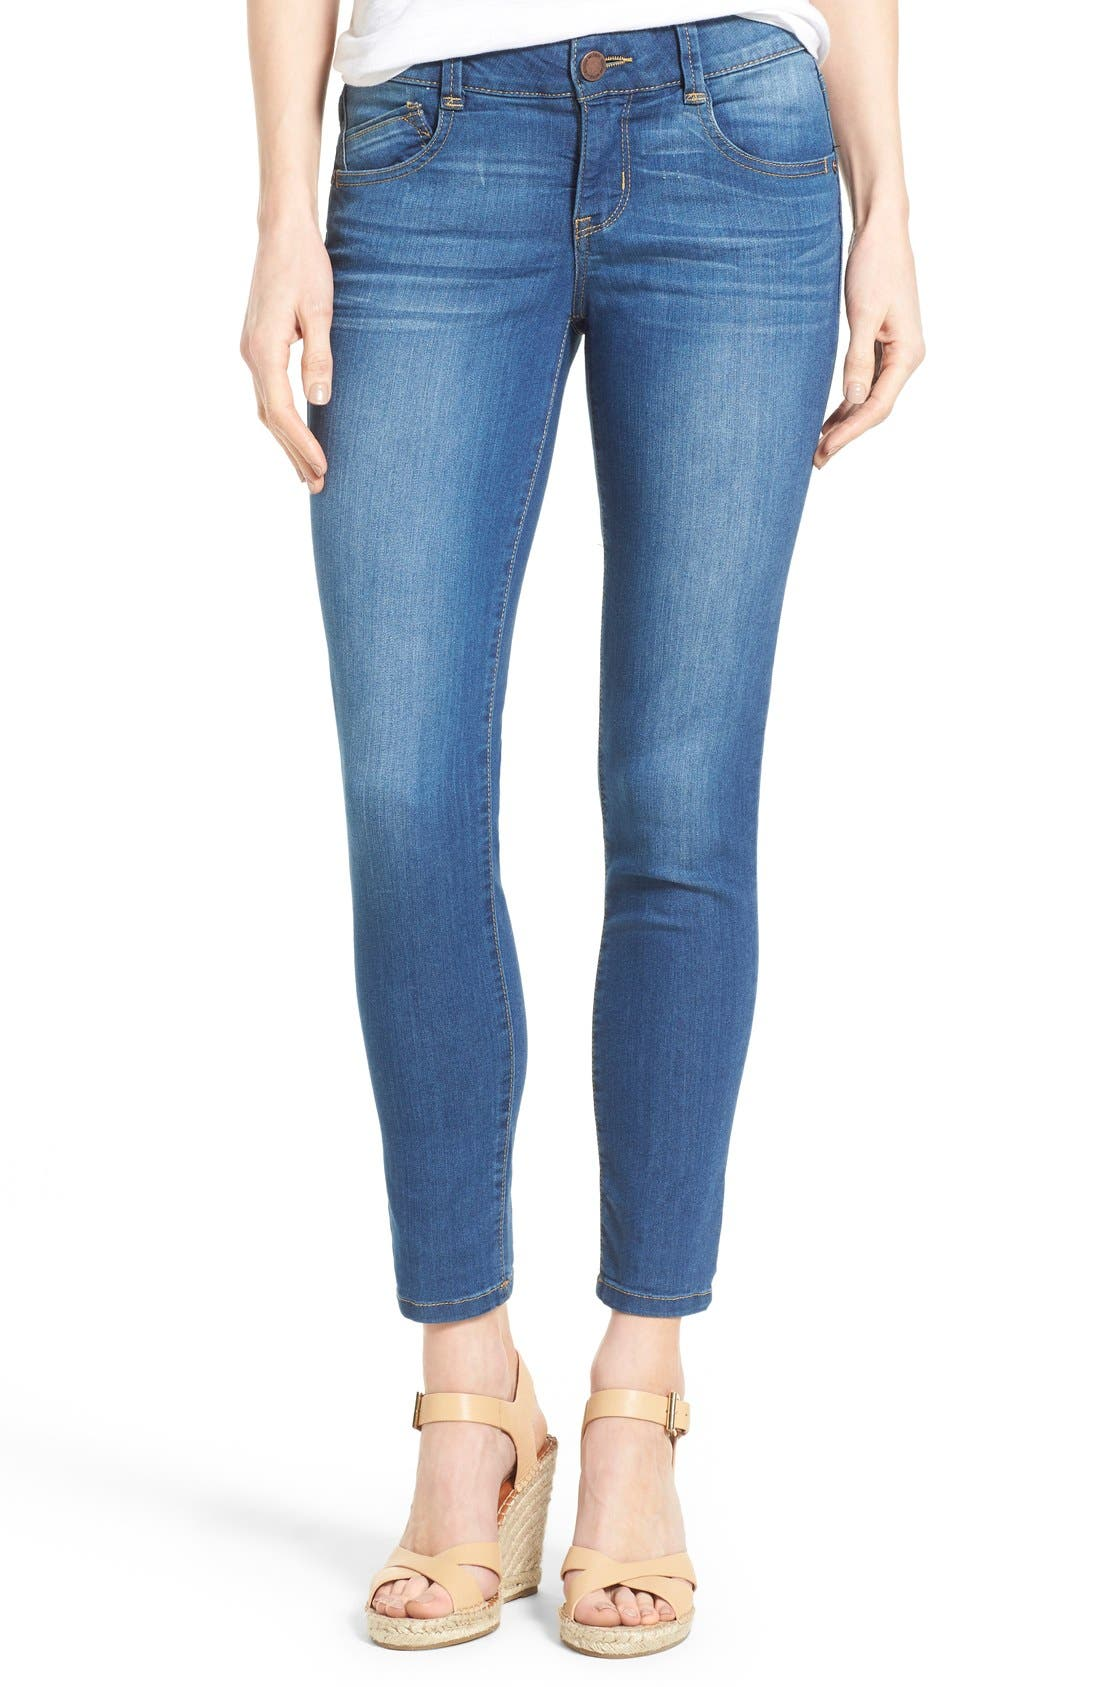 'Ab-solution' Stretch Ankle Skinny Jeans,                             Main thumbnail 1, color,                             Blue